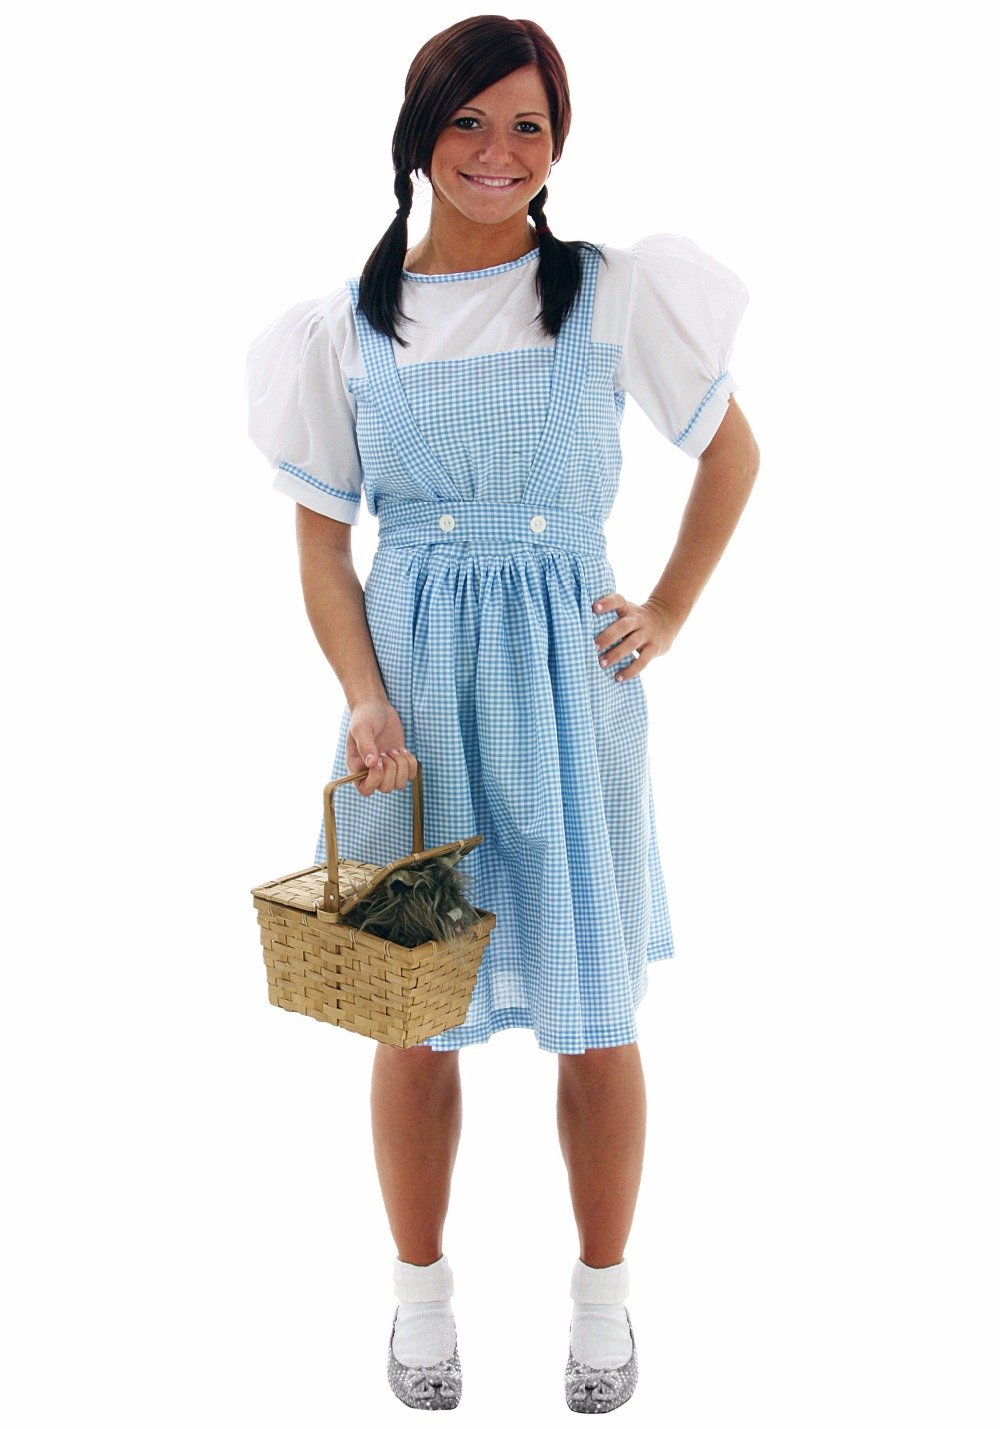 irek hot dorothy halloween costume adult children cosplay costume